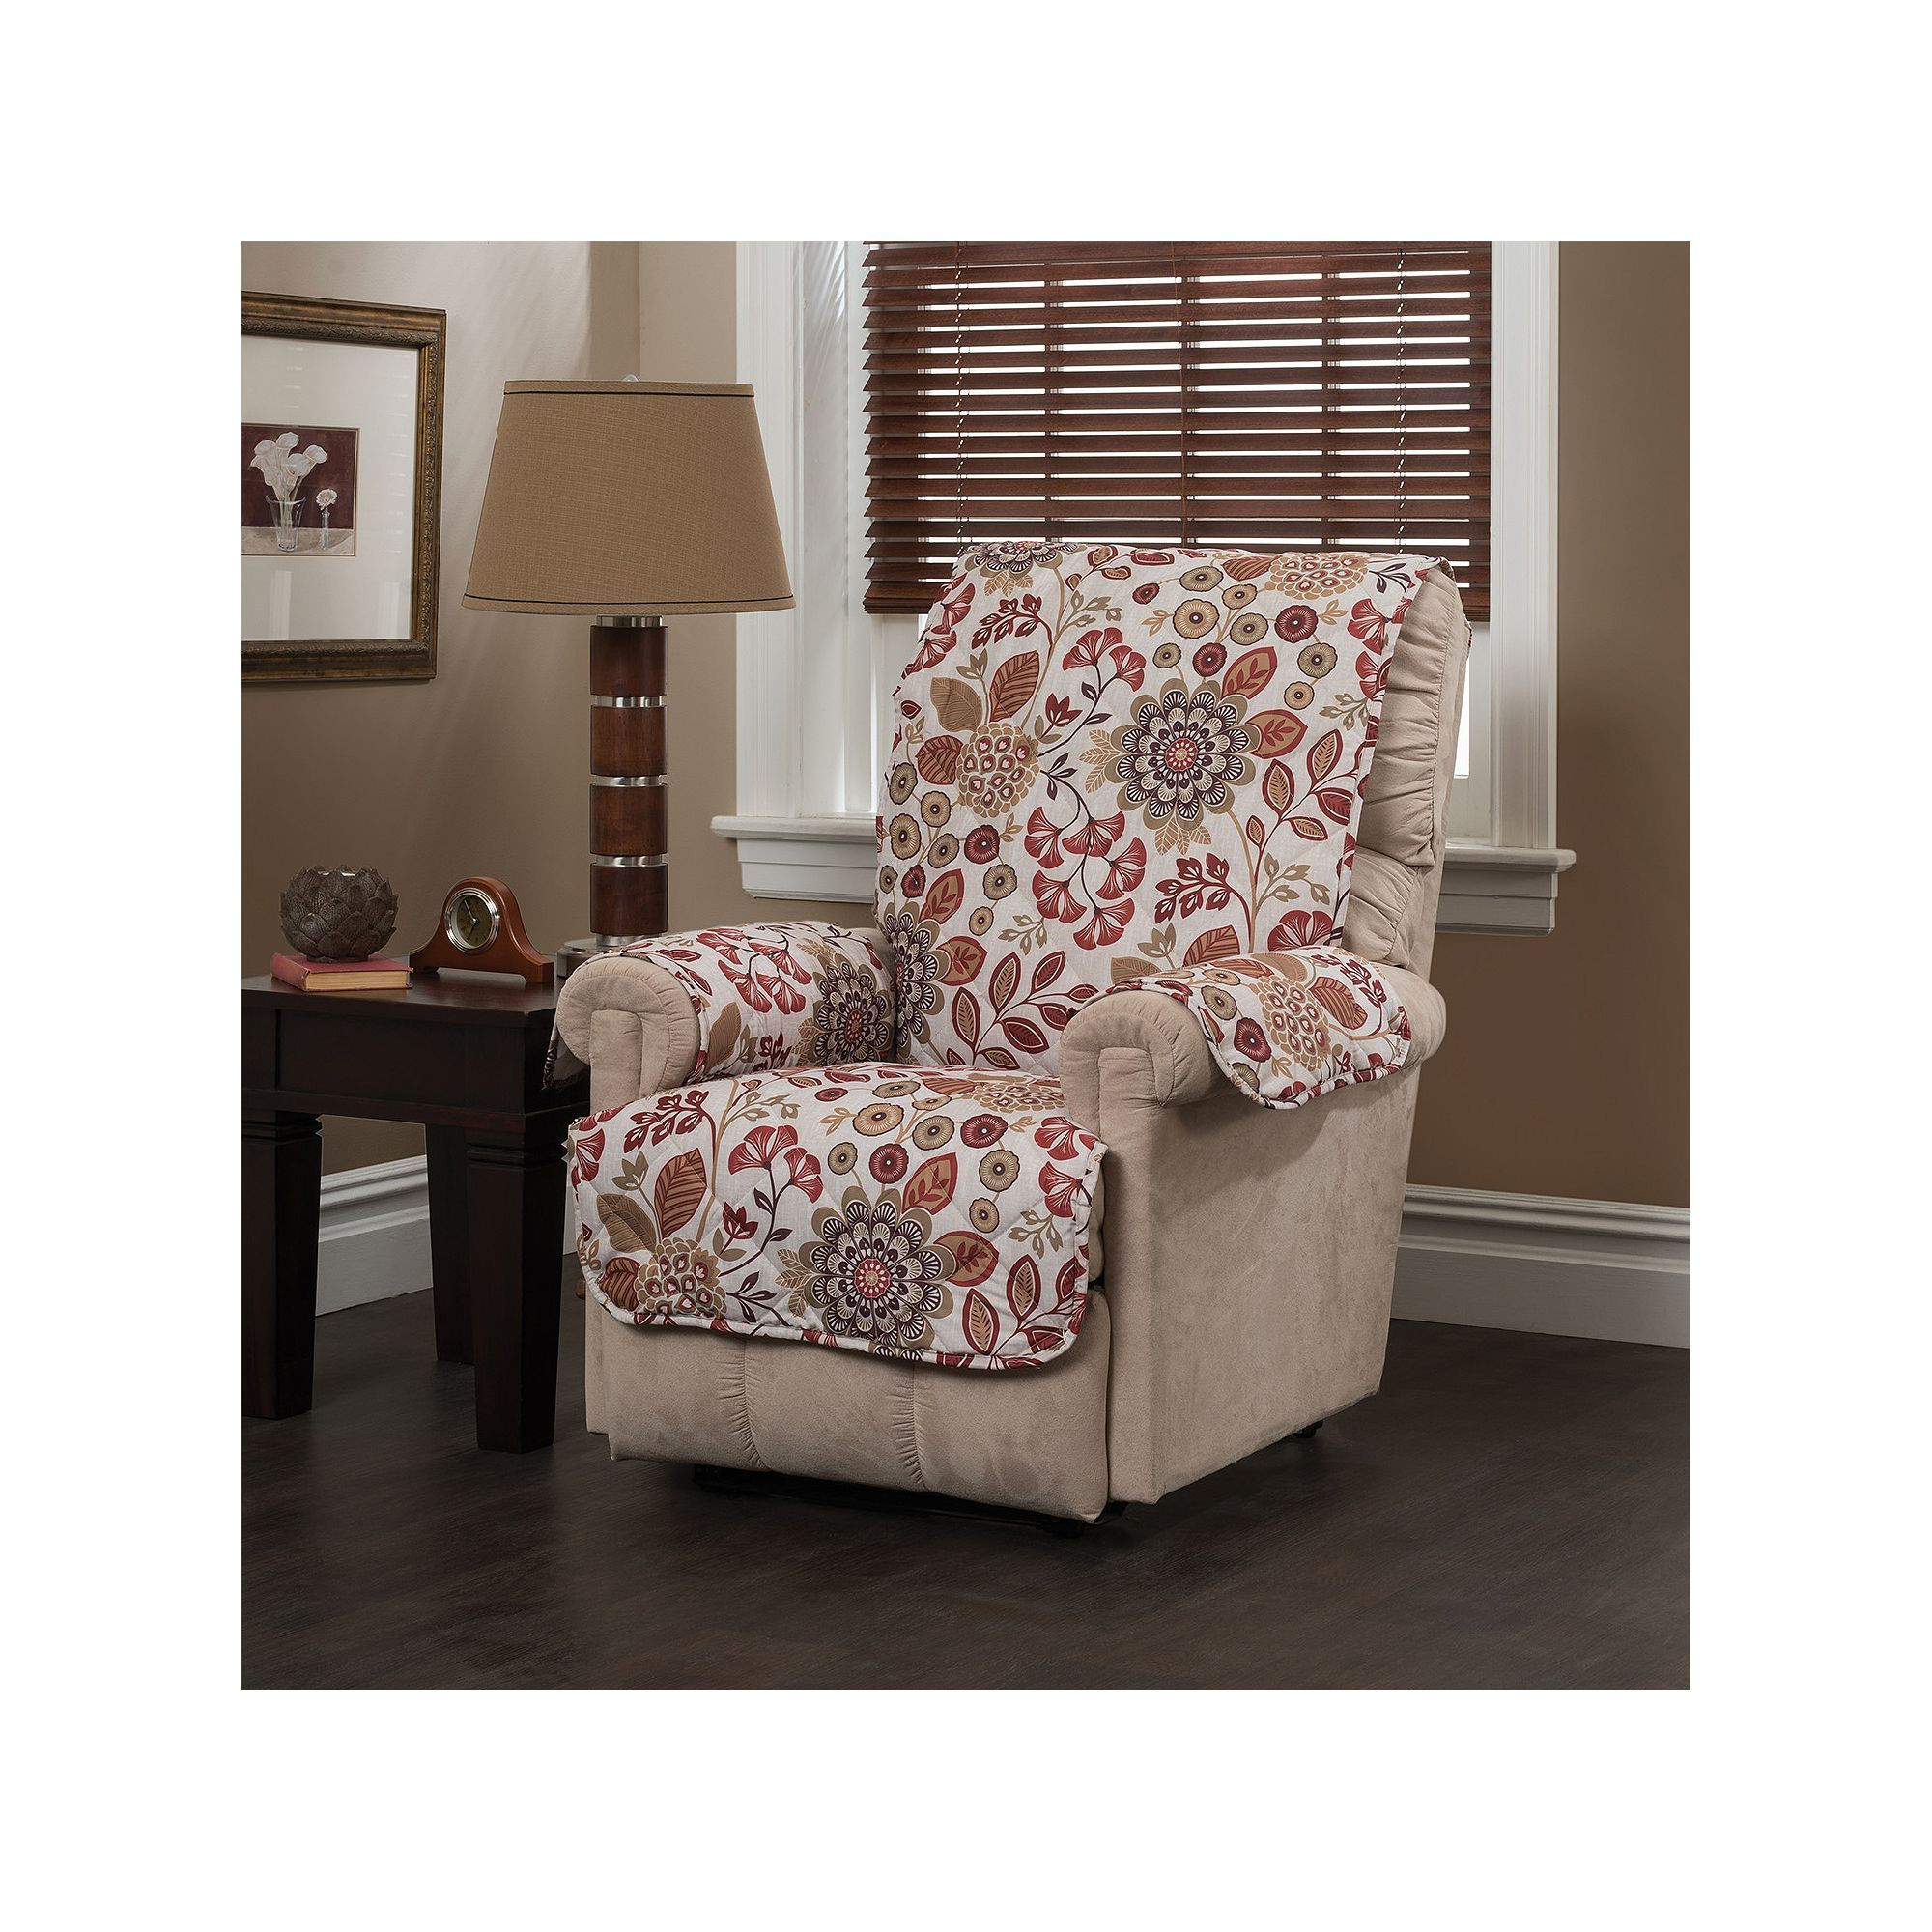 Recliner Slipcover Pattern Cool Inspiration Ideas